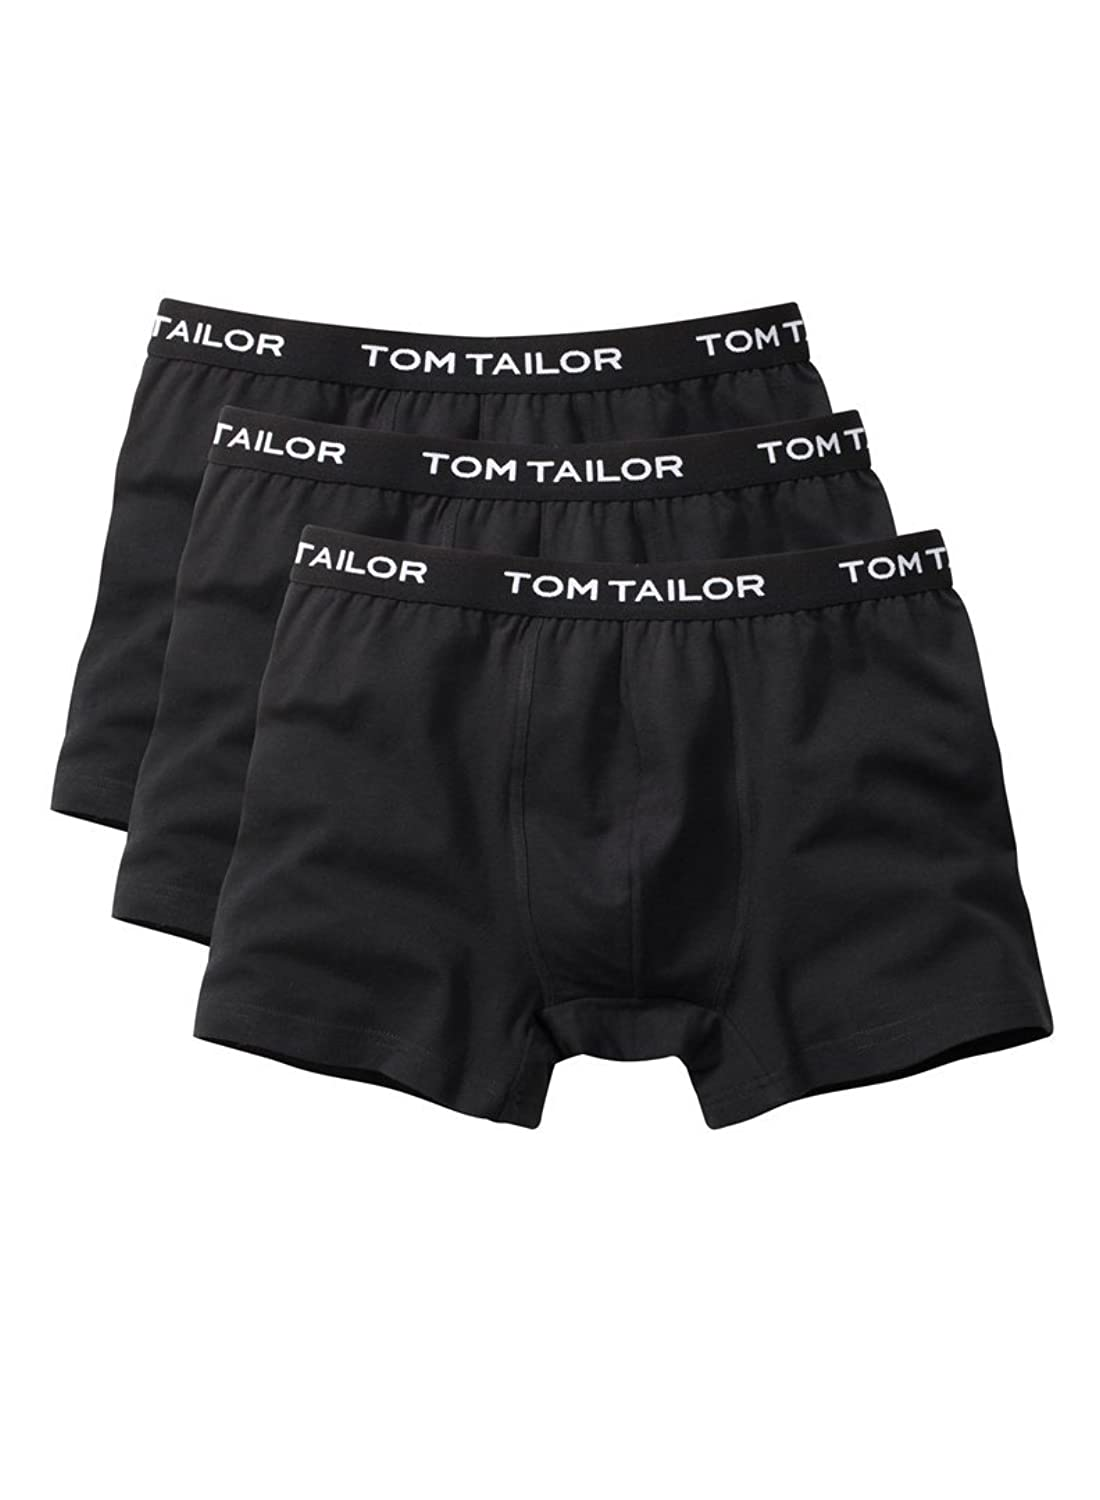 Tom Tailor Long Pants 6er Pack